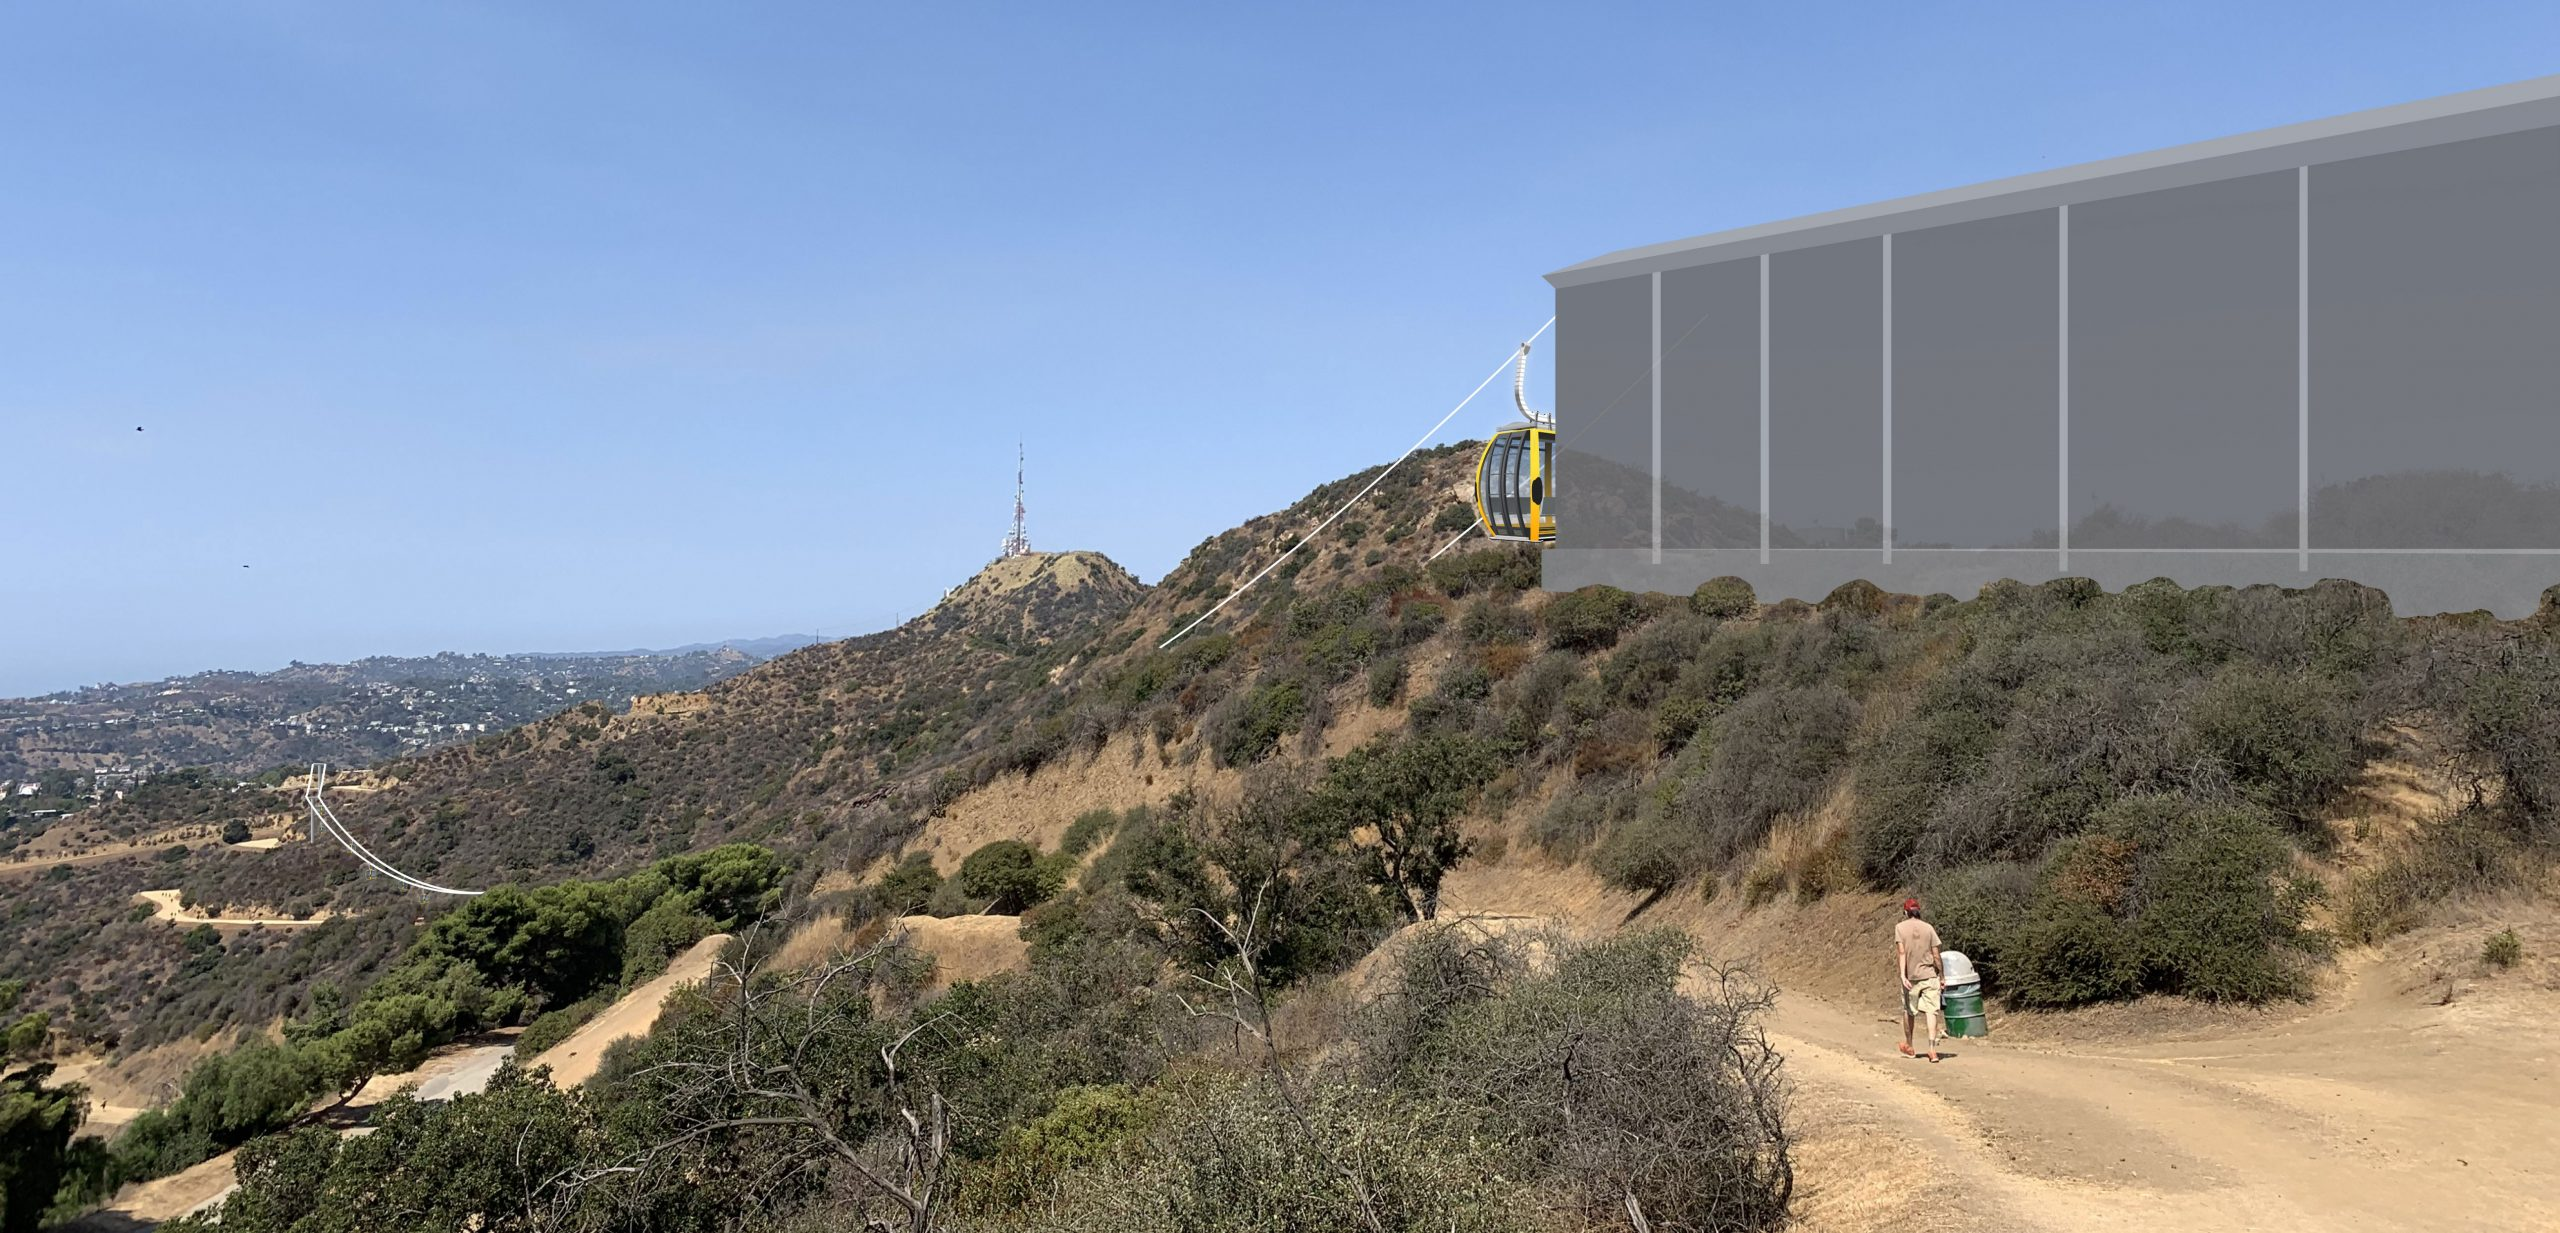 Griffith Park Aerial Tram: ­Another Bright Idea?